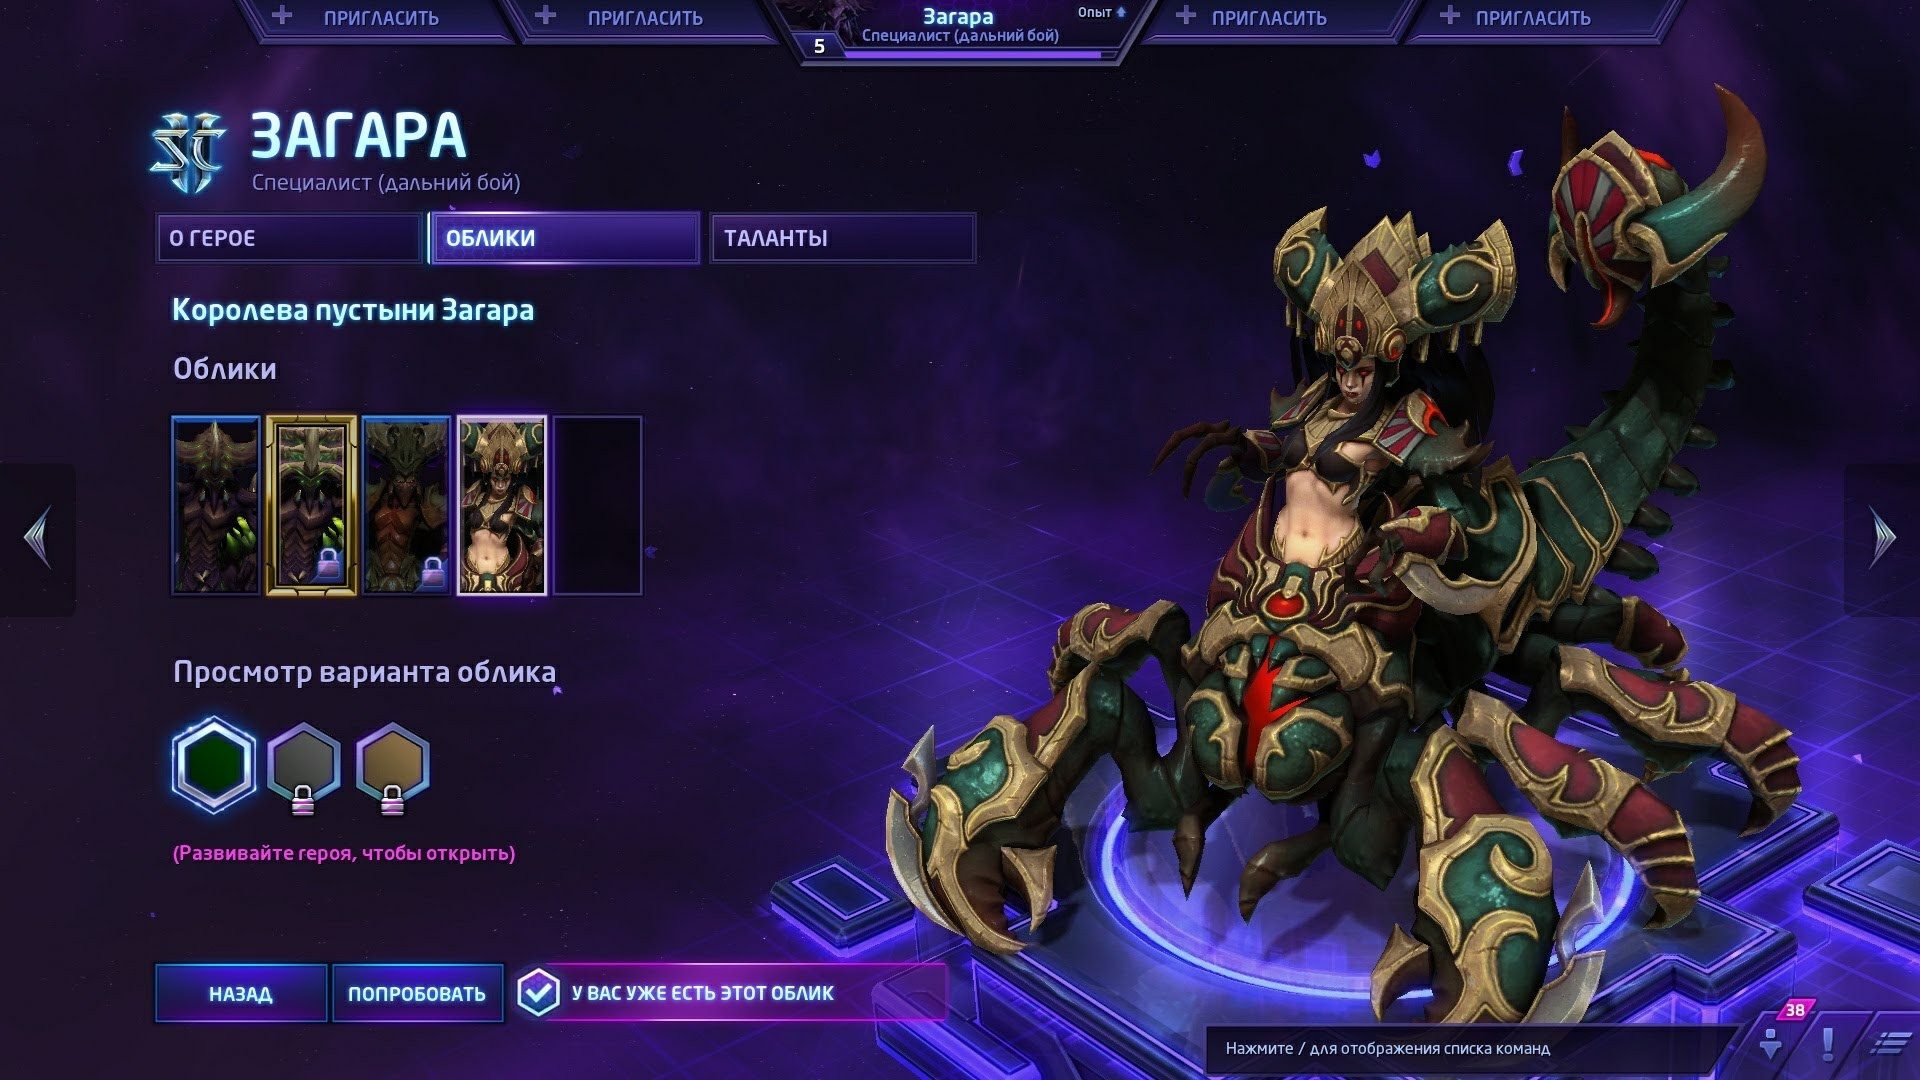 Heroes of the Storm Hero Zagara Key